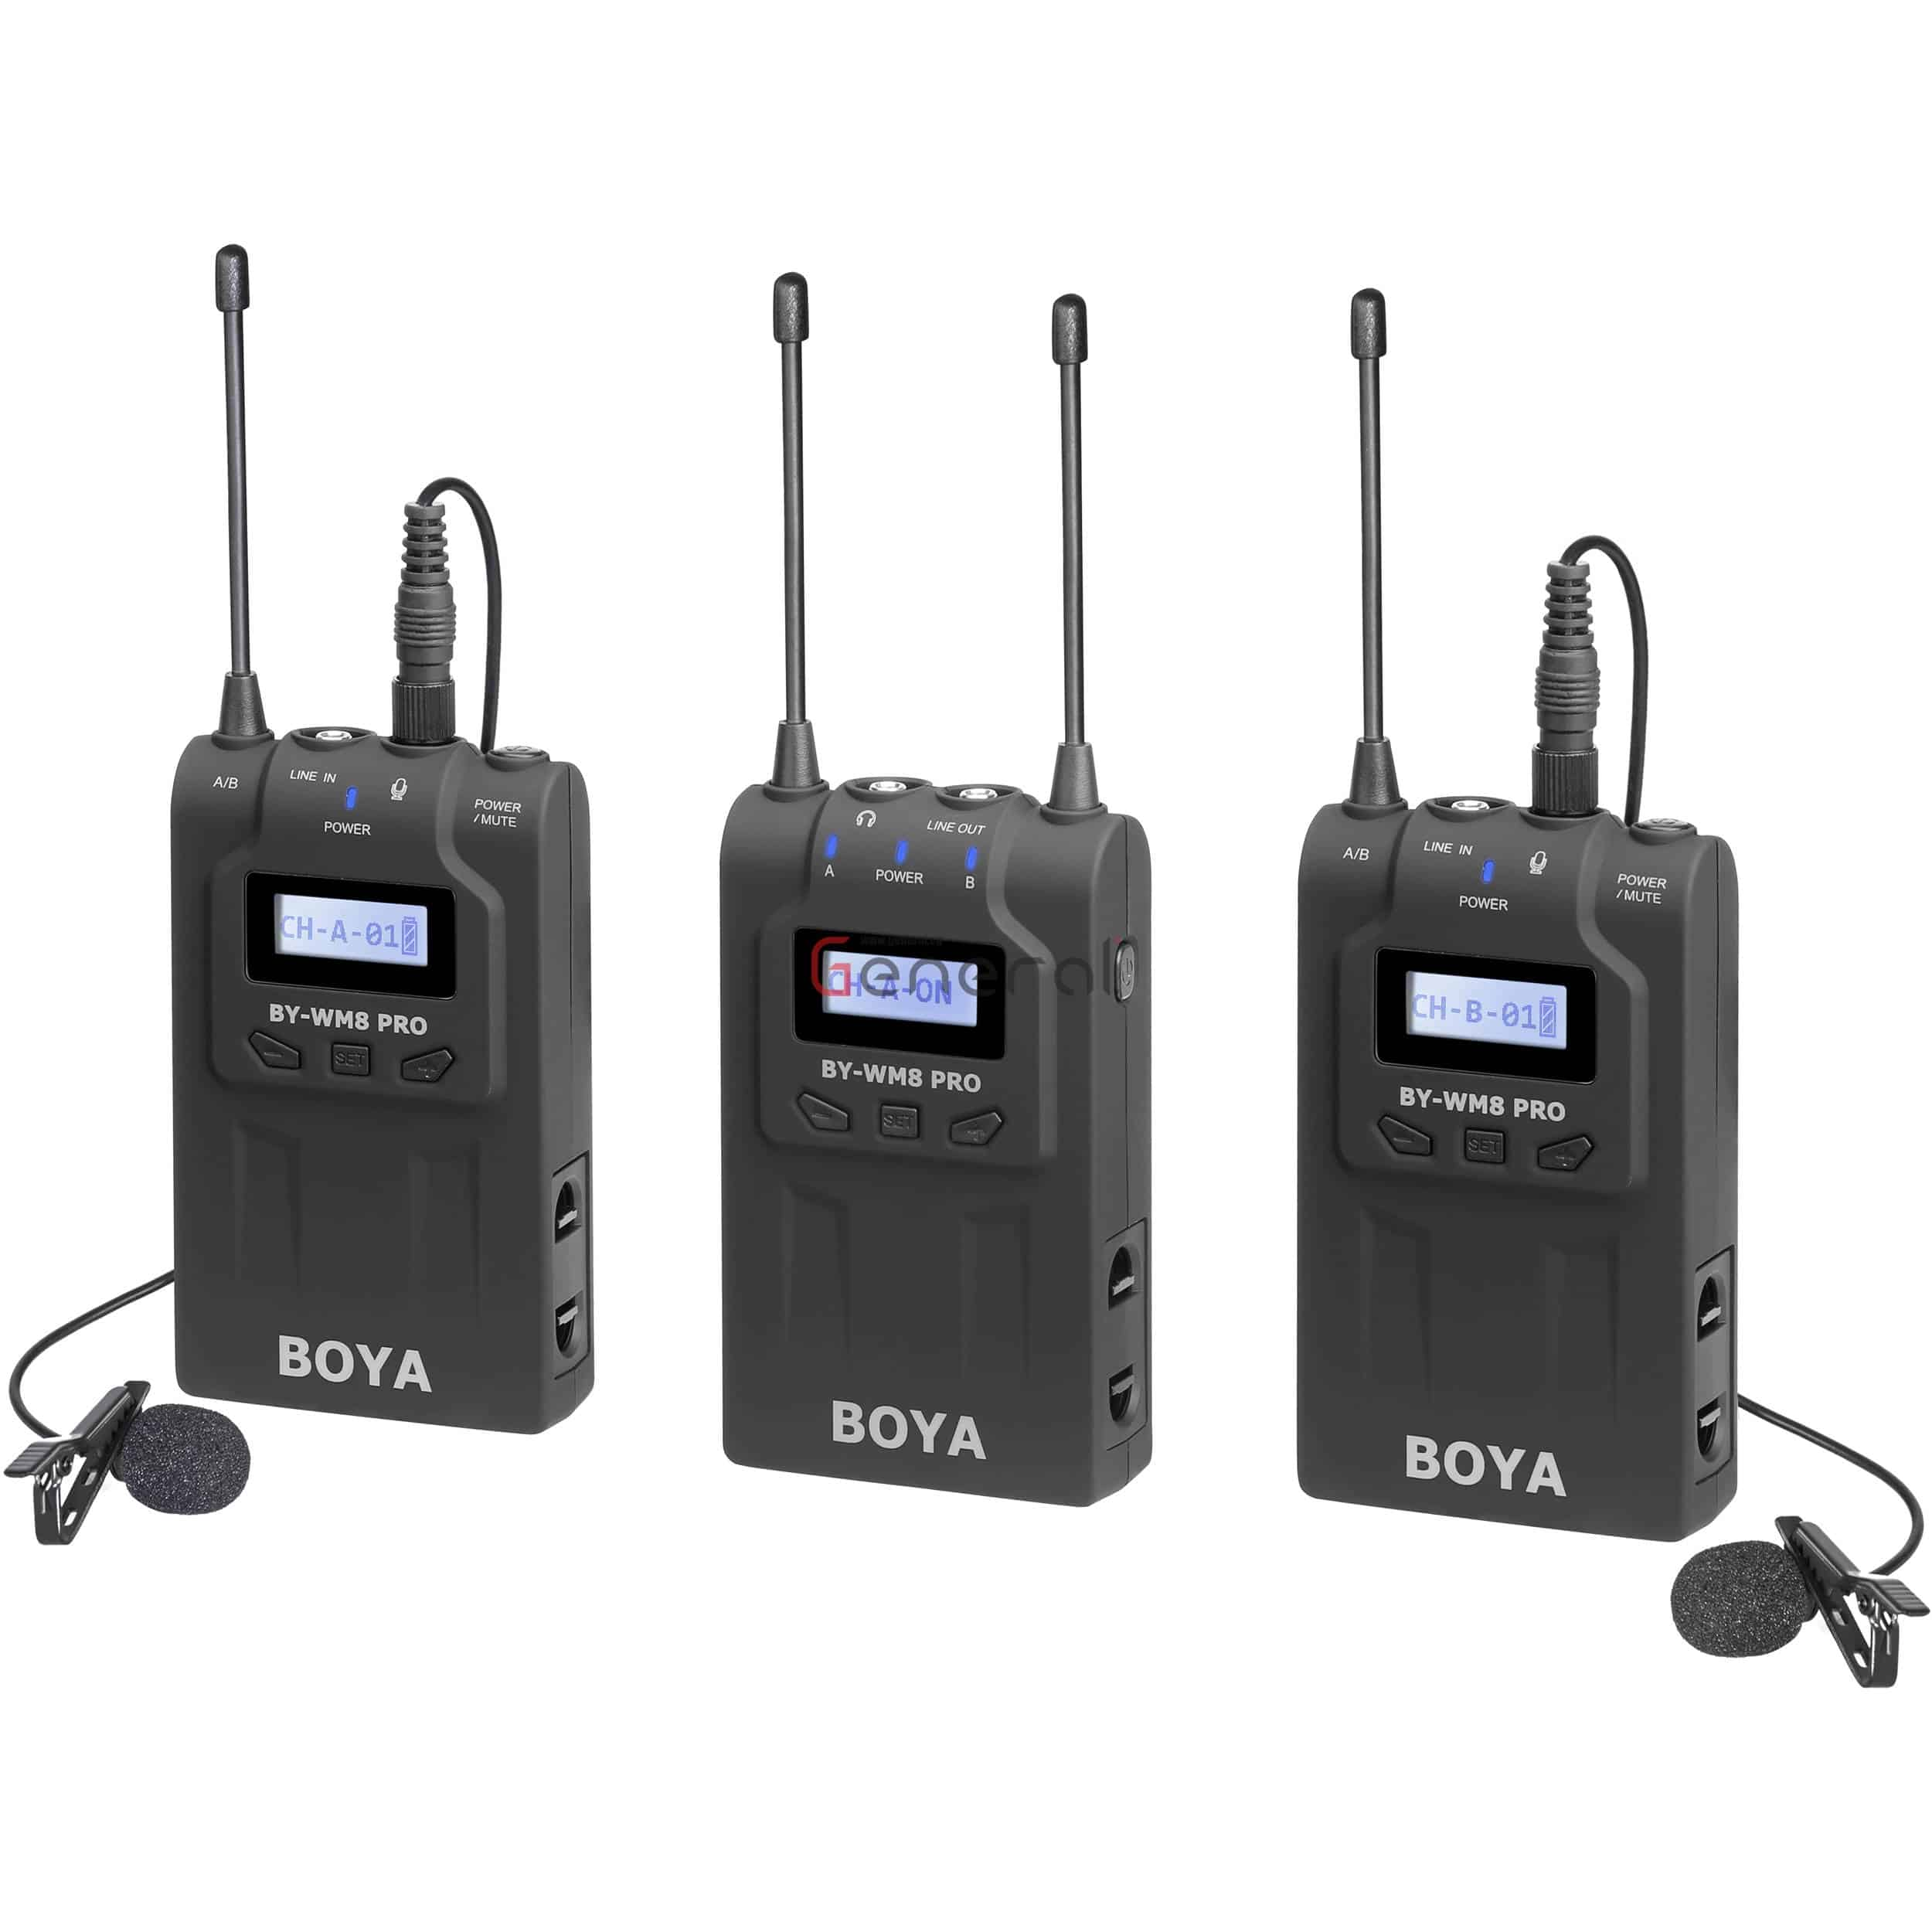 BOYA by-WM8 Pro-K2 UHF Dual-Channel Wireless Microphone System Receiver+Transmitter A+Transmitter B with LCD Display Screen Compatible with Canon Nikon DSLR Camera Camcorder with Cleaning Cloth